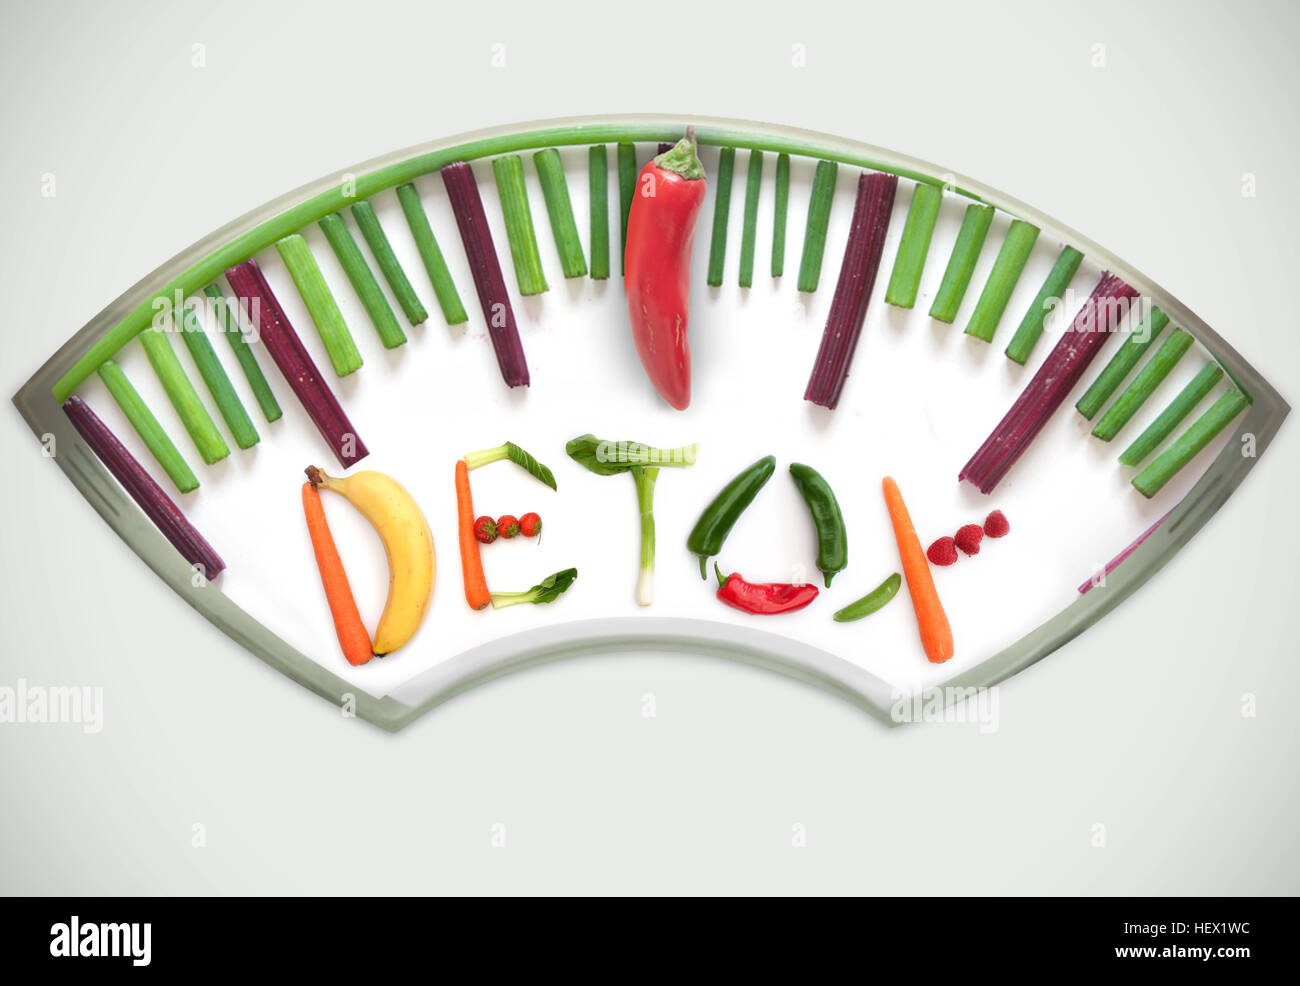 Bathroom weighing scales made of vegetables including chives, betroot and pepper, pointing towards detox - Stock Image